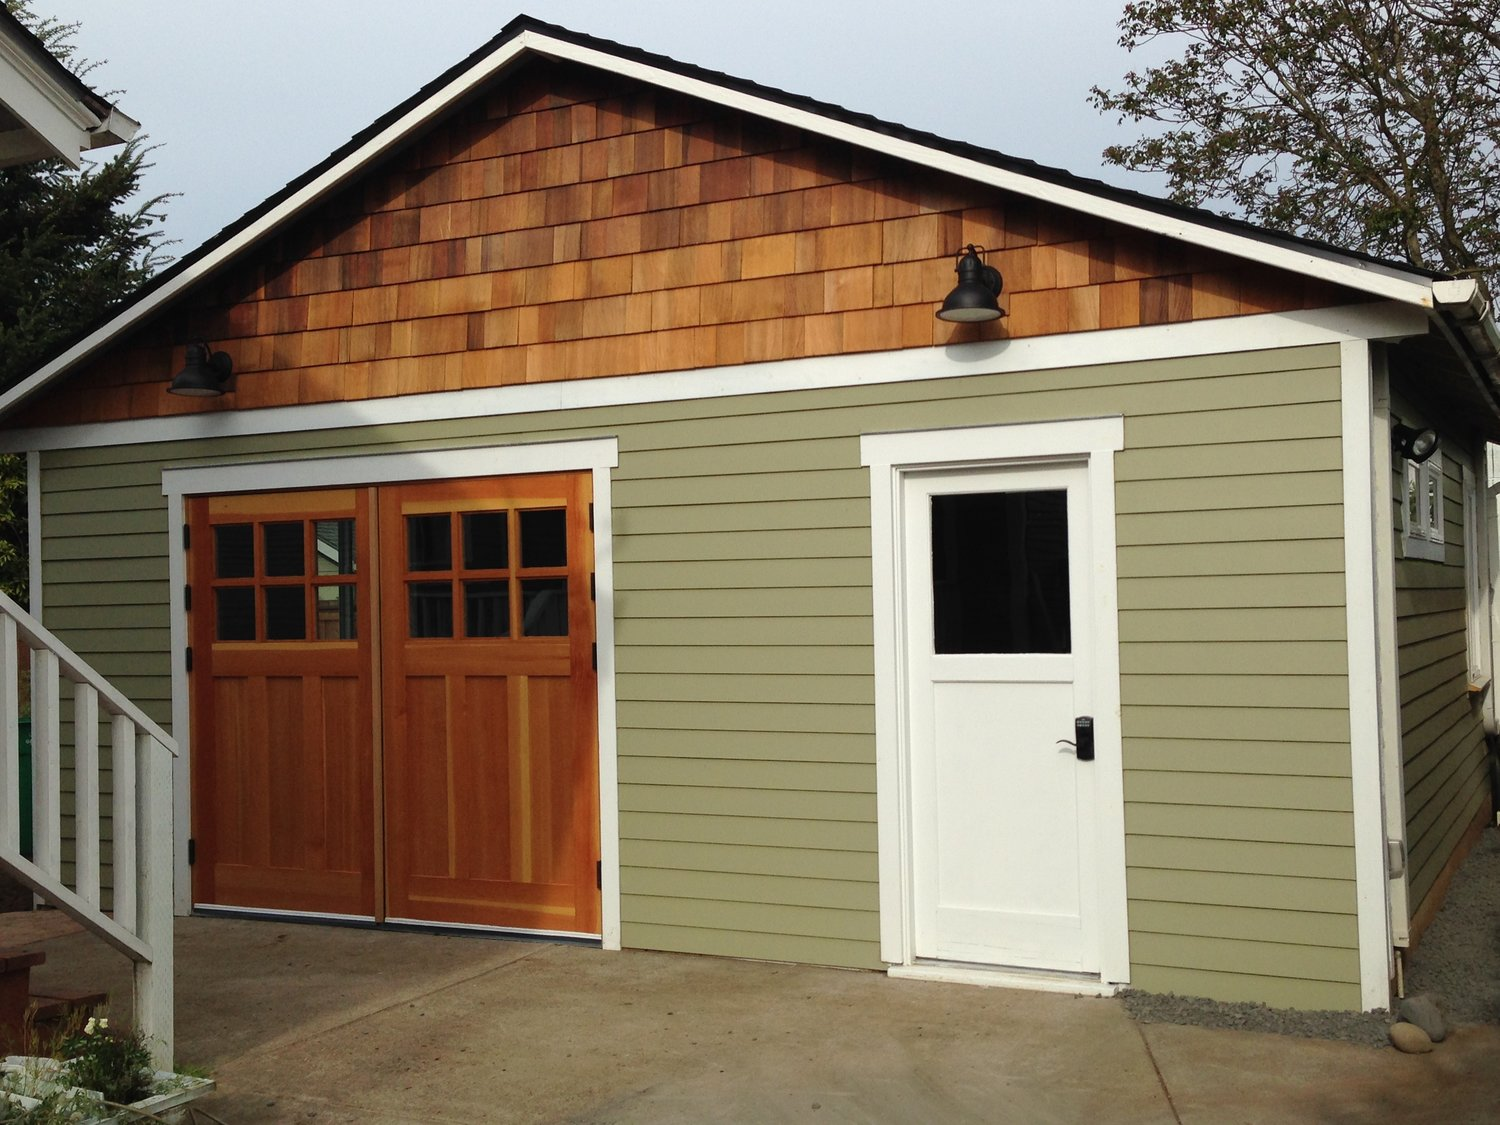 How to Save Money with a Garage Conversion ADU — Building an ADU